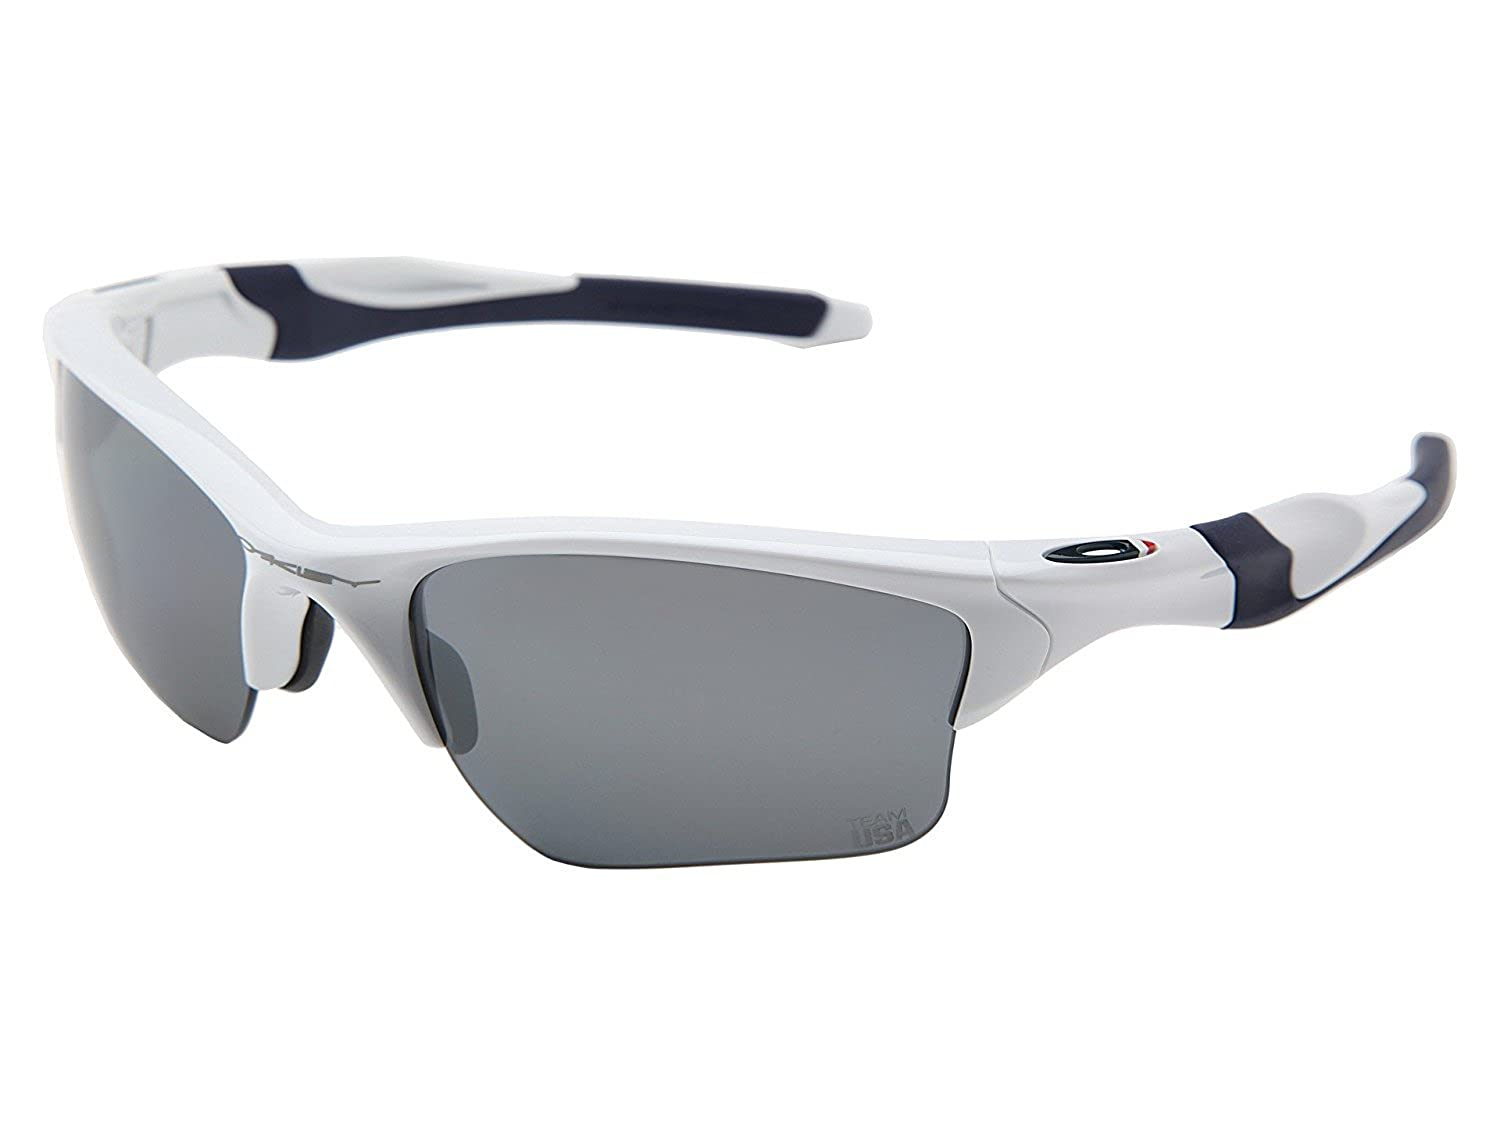 e928de8607 Amazon.com  Oakley Men s Half Jacket 2.0 Rectangular Sunglasses ...